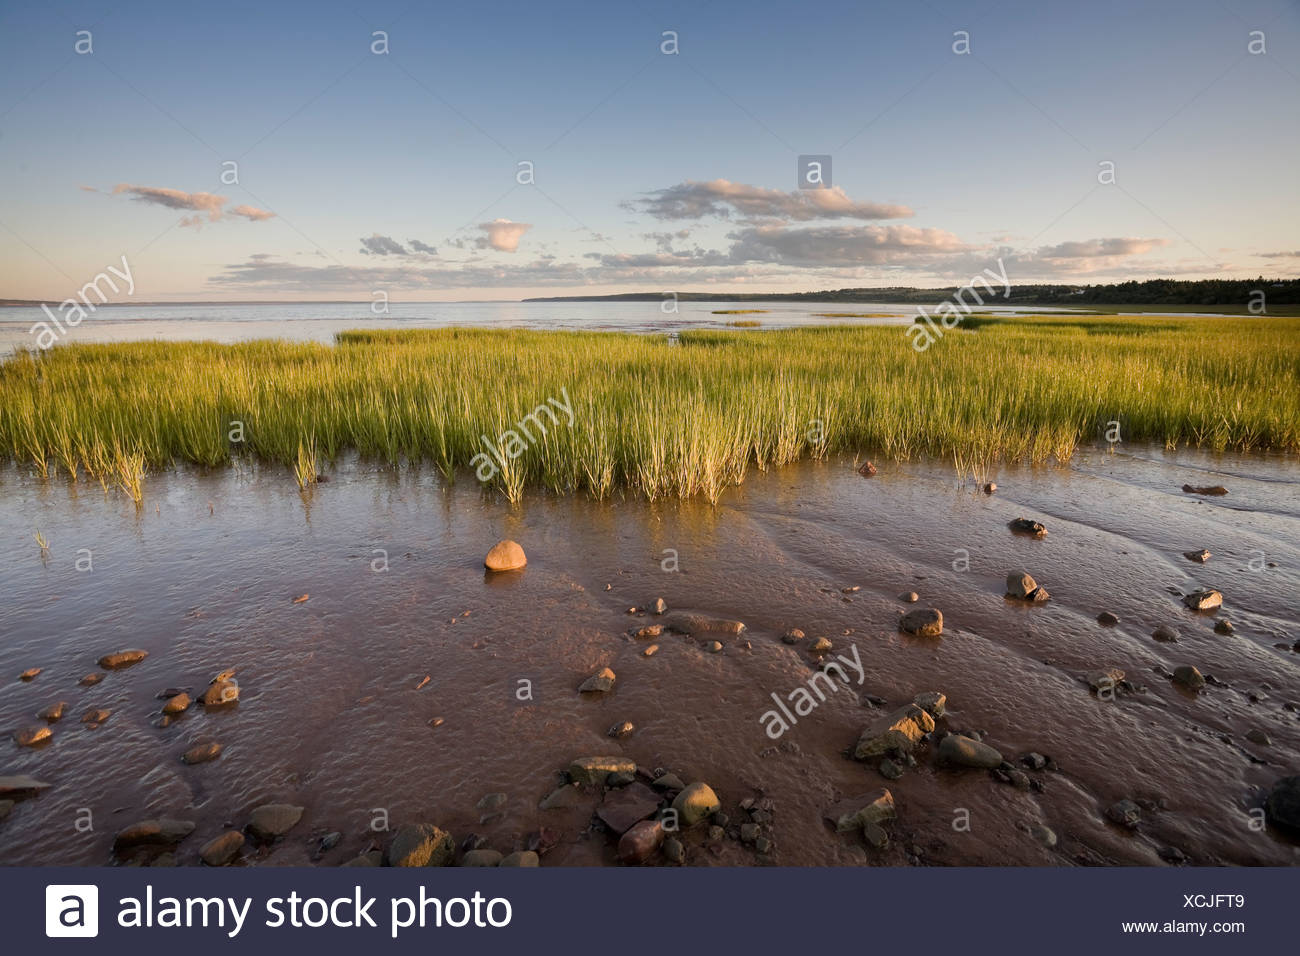 Bay of Fundy mud flats on the Cumberland Basin, part of the Chignecto Bay at Rockport, New Brunswick, Canada - Stock Image